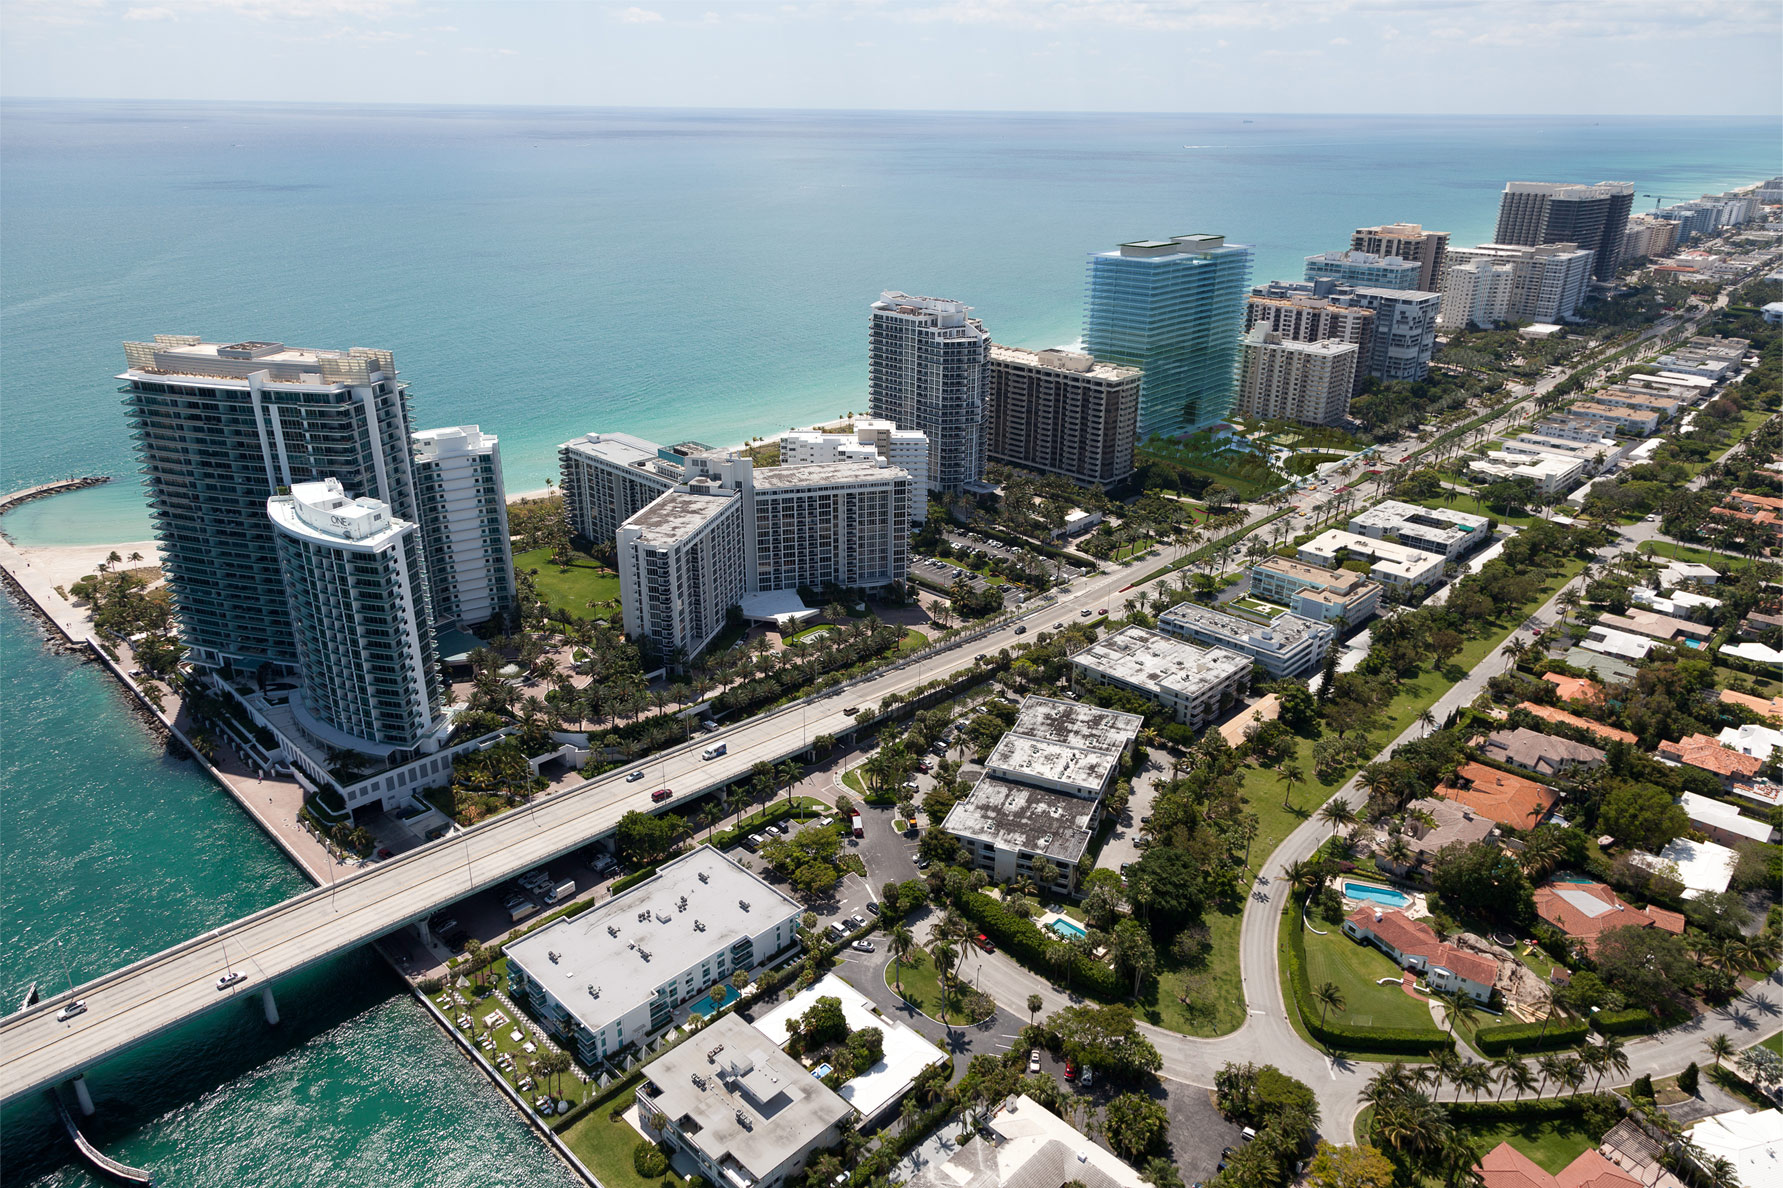 Aerial NW view of Oceana at Bal Harbour